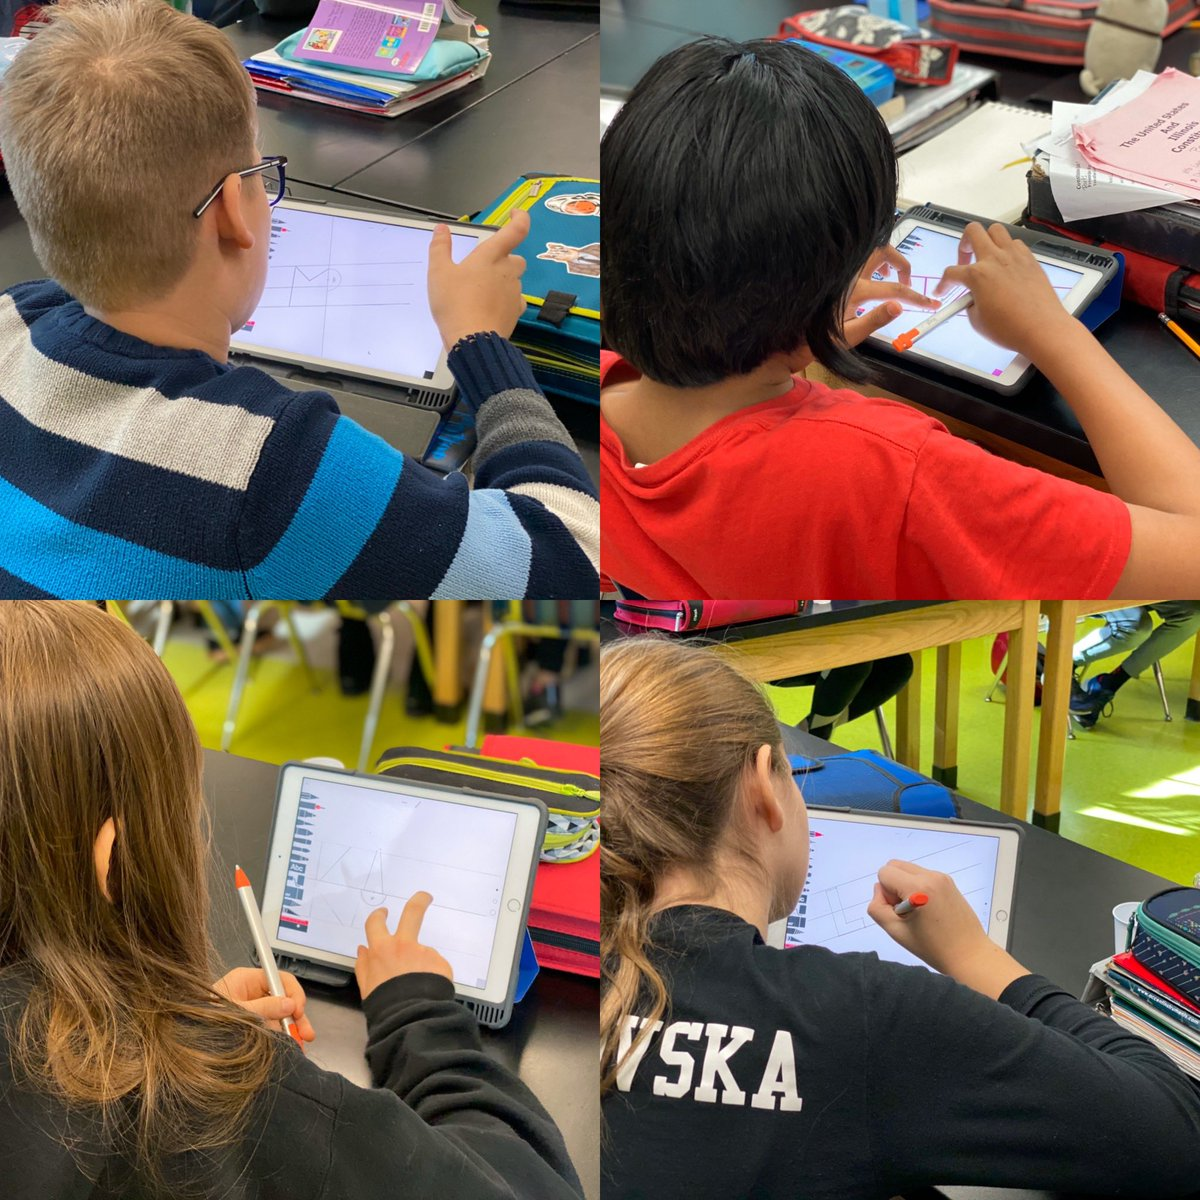 Today's #TechChallengeTuesday was inspired by #EveryoneCanCreate #Drawing! Blocks on Blocks focused on drawing a word using block letters. The lesson helped students to design amazing words! #AppleEDUChat #62Learns #62ICS